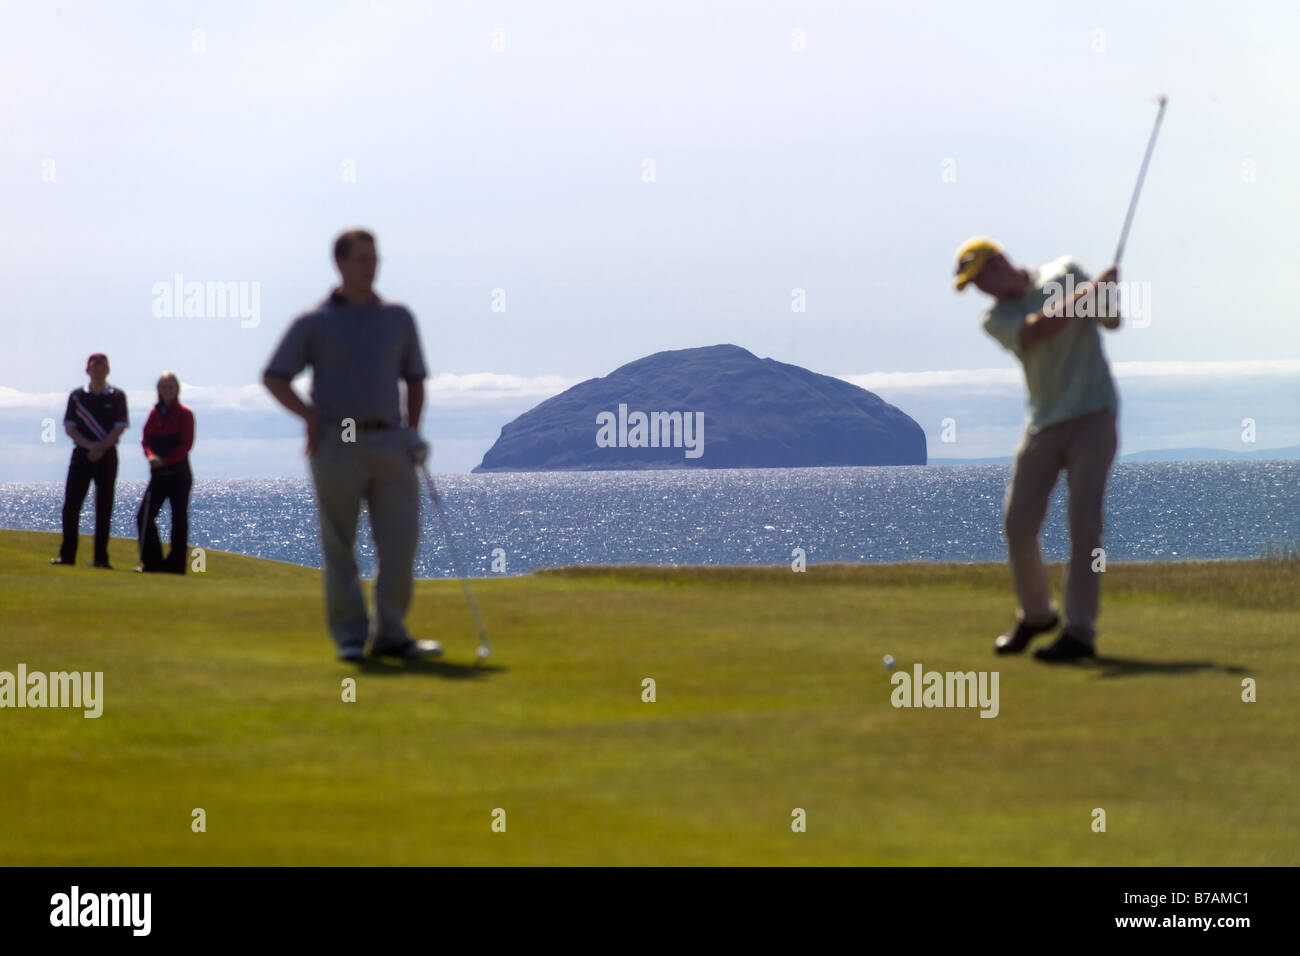 Ailsa Craig with golf tee off in foreground - Stock Image